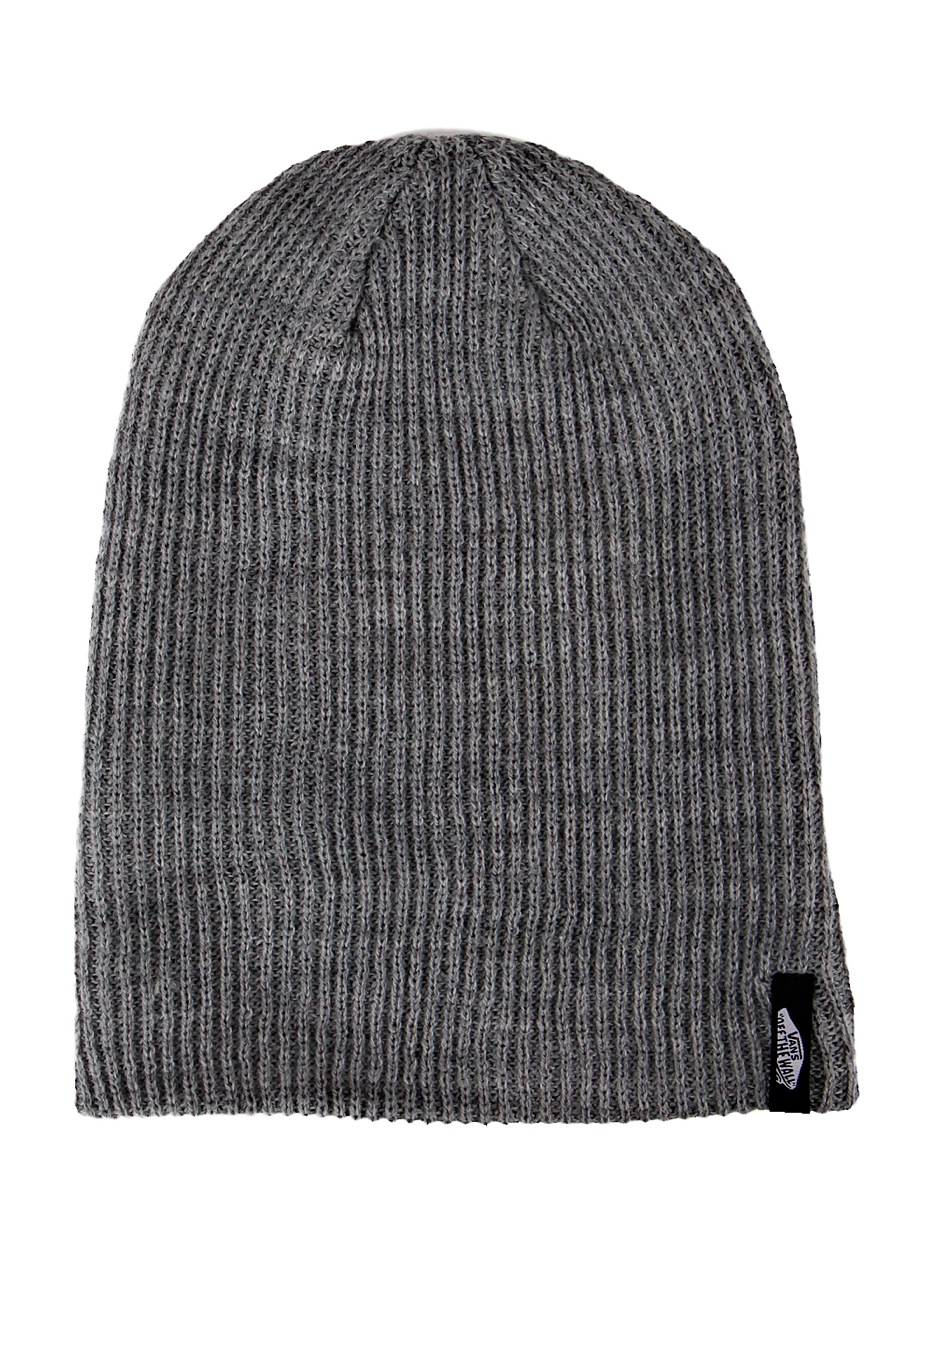 0fd2e78bfc Vans - Mismoedig Gravel Grey Heather - Beanie - Impericon.com UK